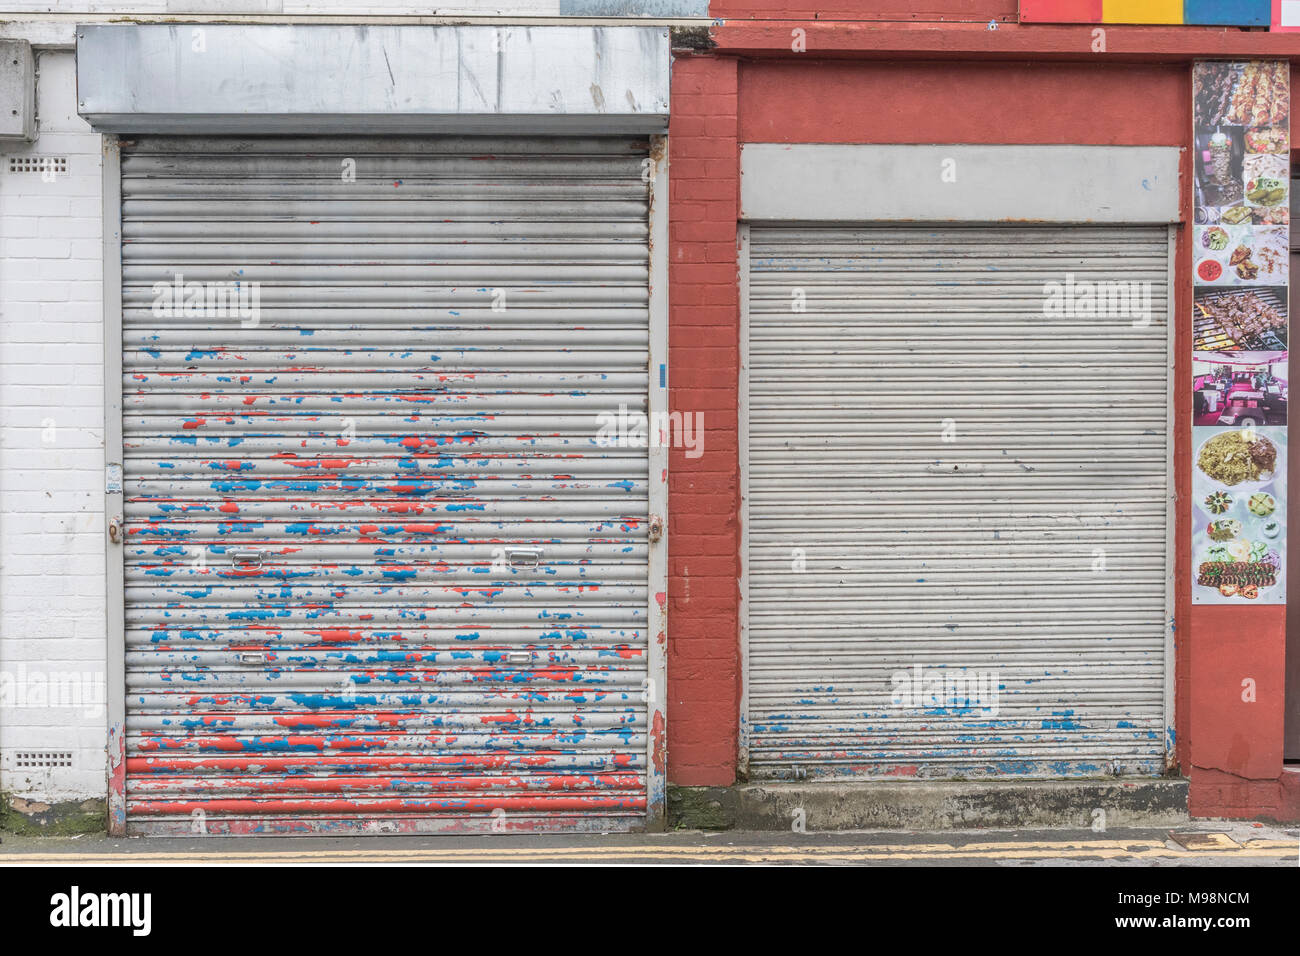 Battered closed roller shutter door with paint peeling off. Metaphor recession, high street closures, vacant shops. Obstructed or obstruction concept. Stock Photo